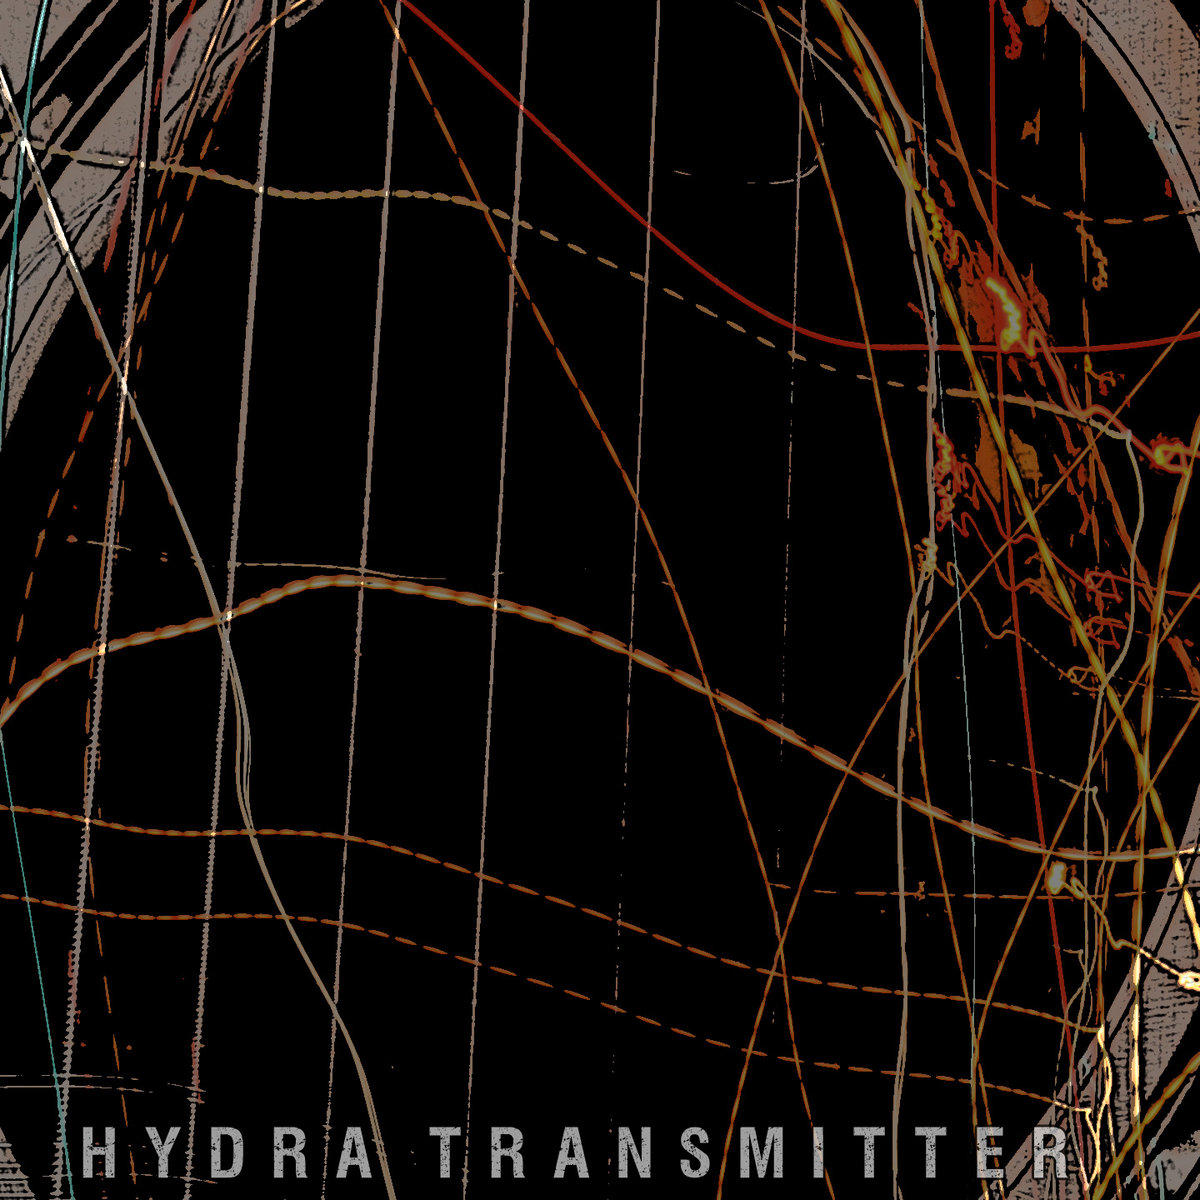 Hydra Transmitter artwork